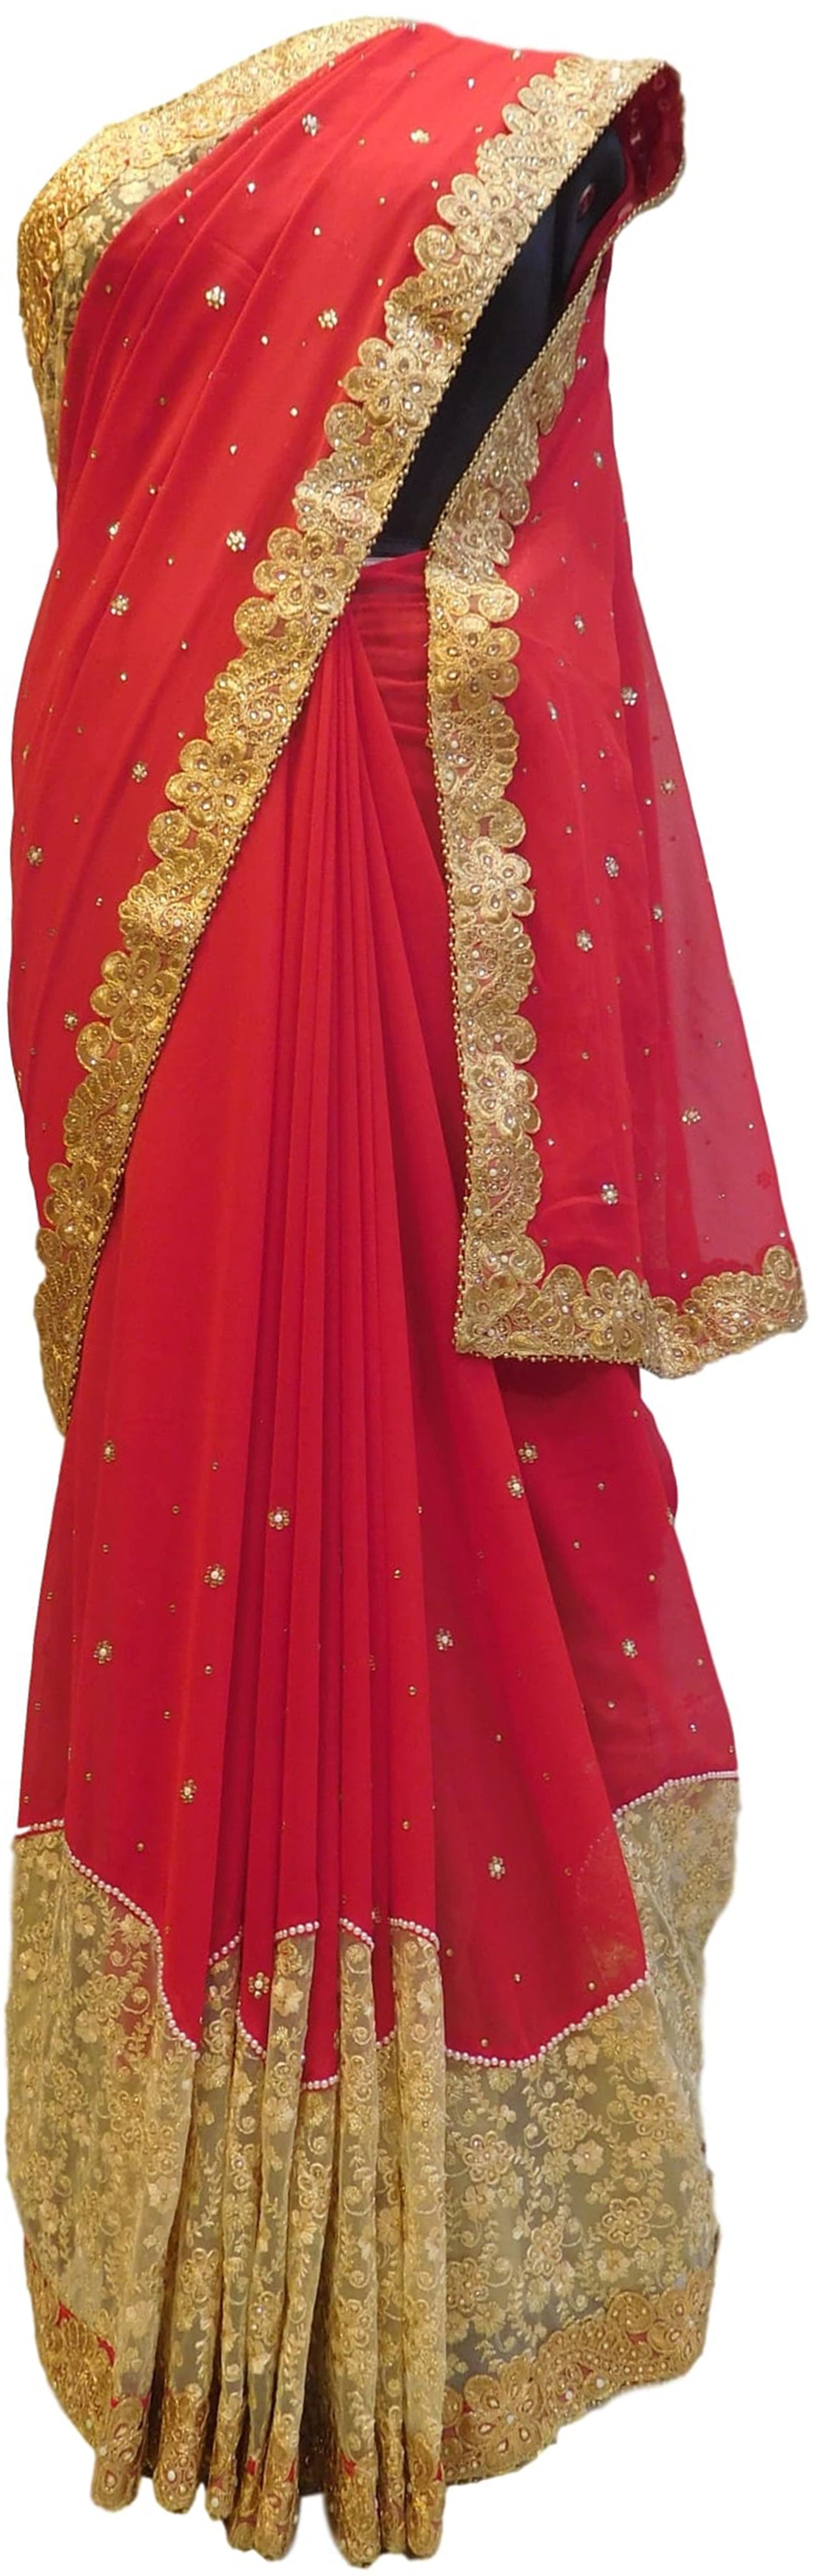 Red & Cream Designer Georgette Hand Embroidery Zari Pearl Thread Stone Work Saree Sari